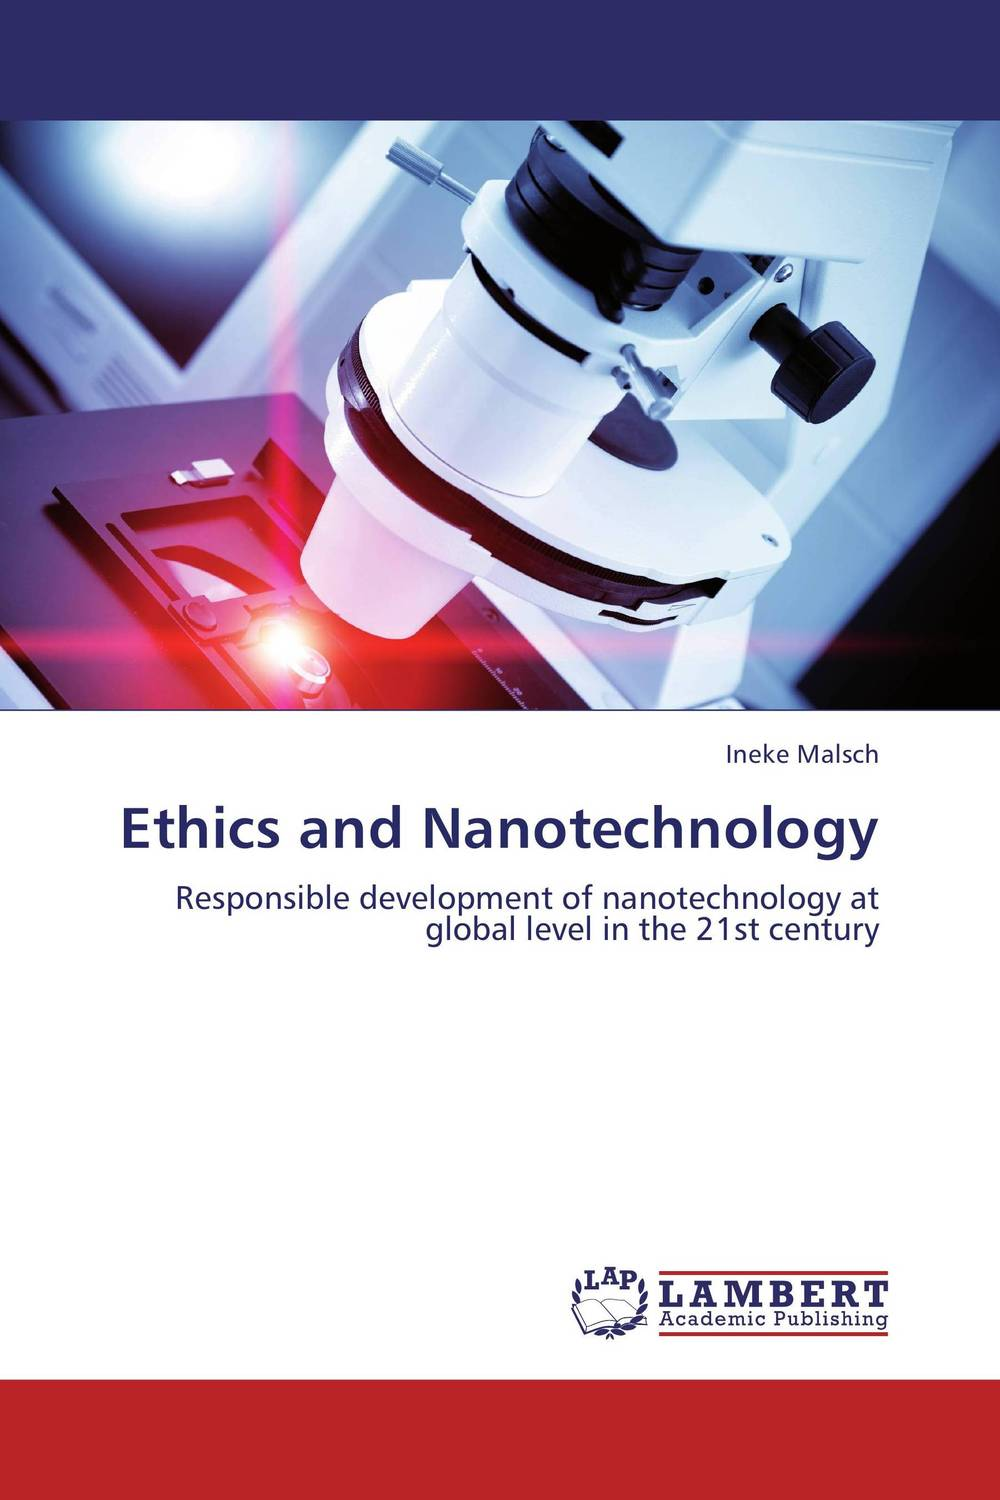 Ethics and Nanotechnology the application of global ethics to solve local improprieties